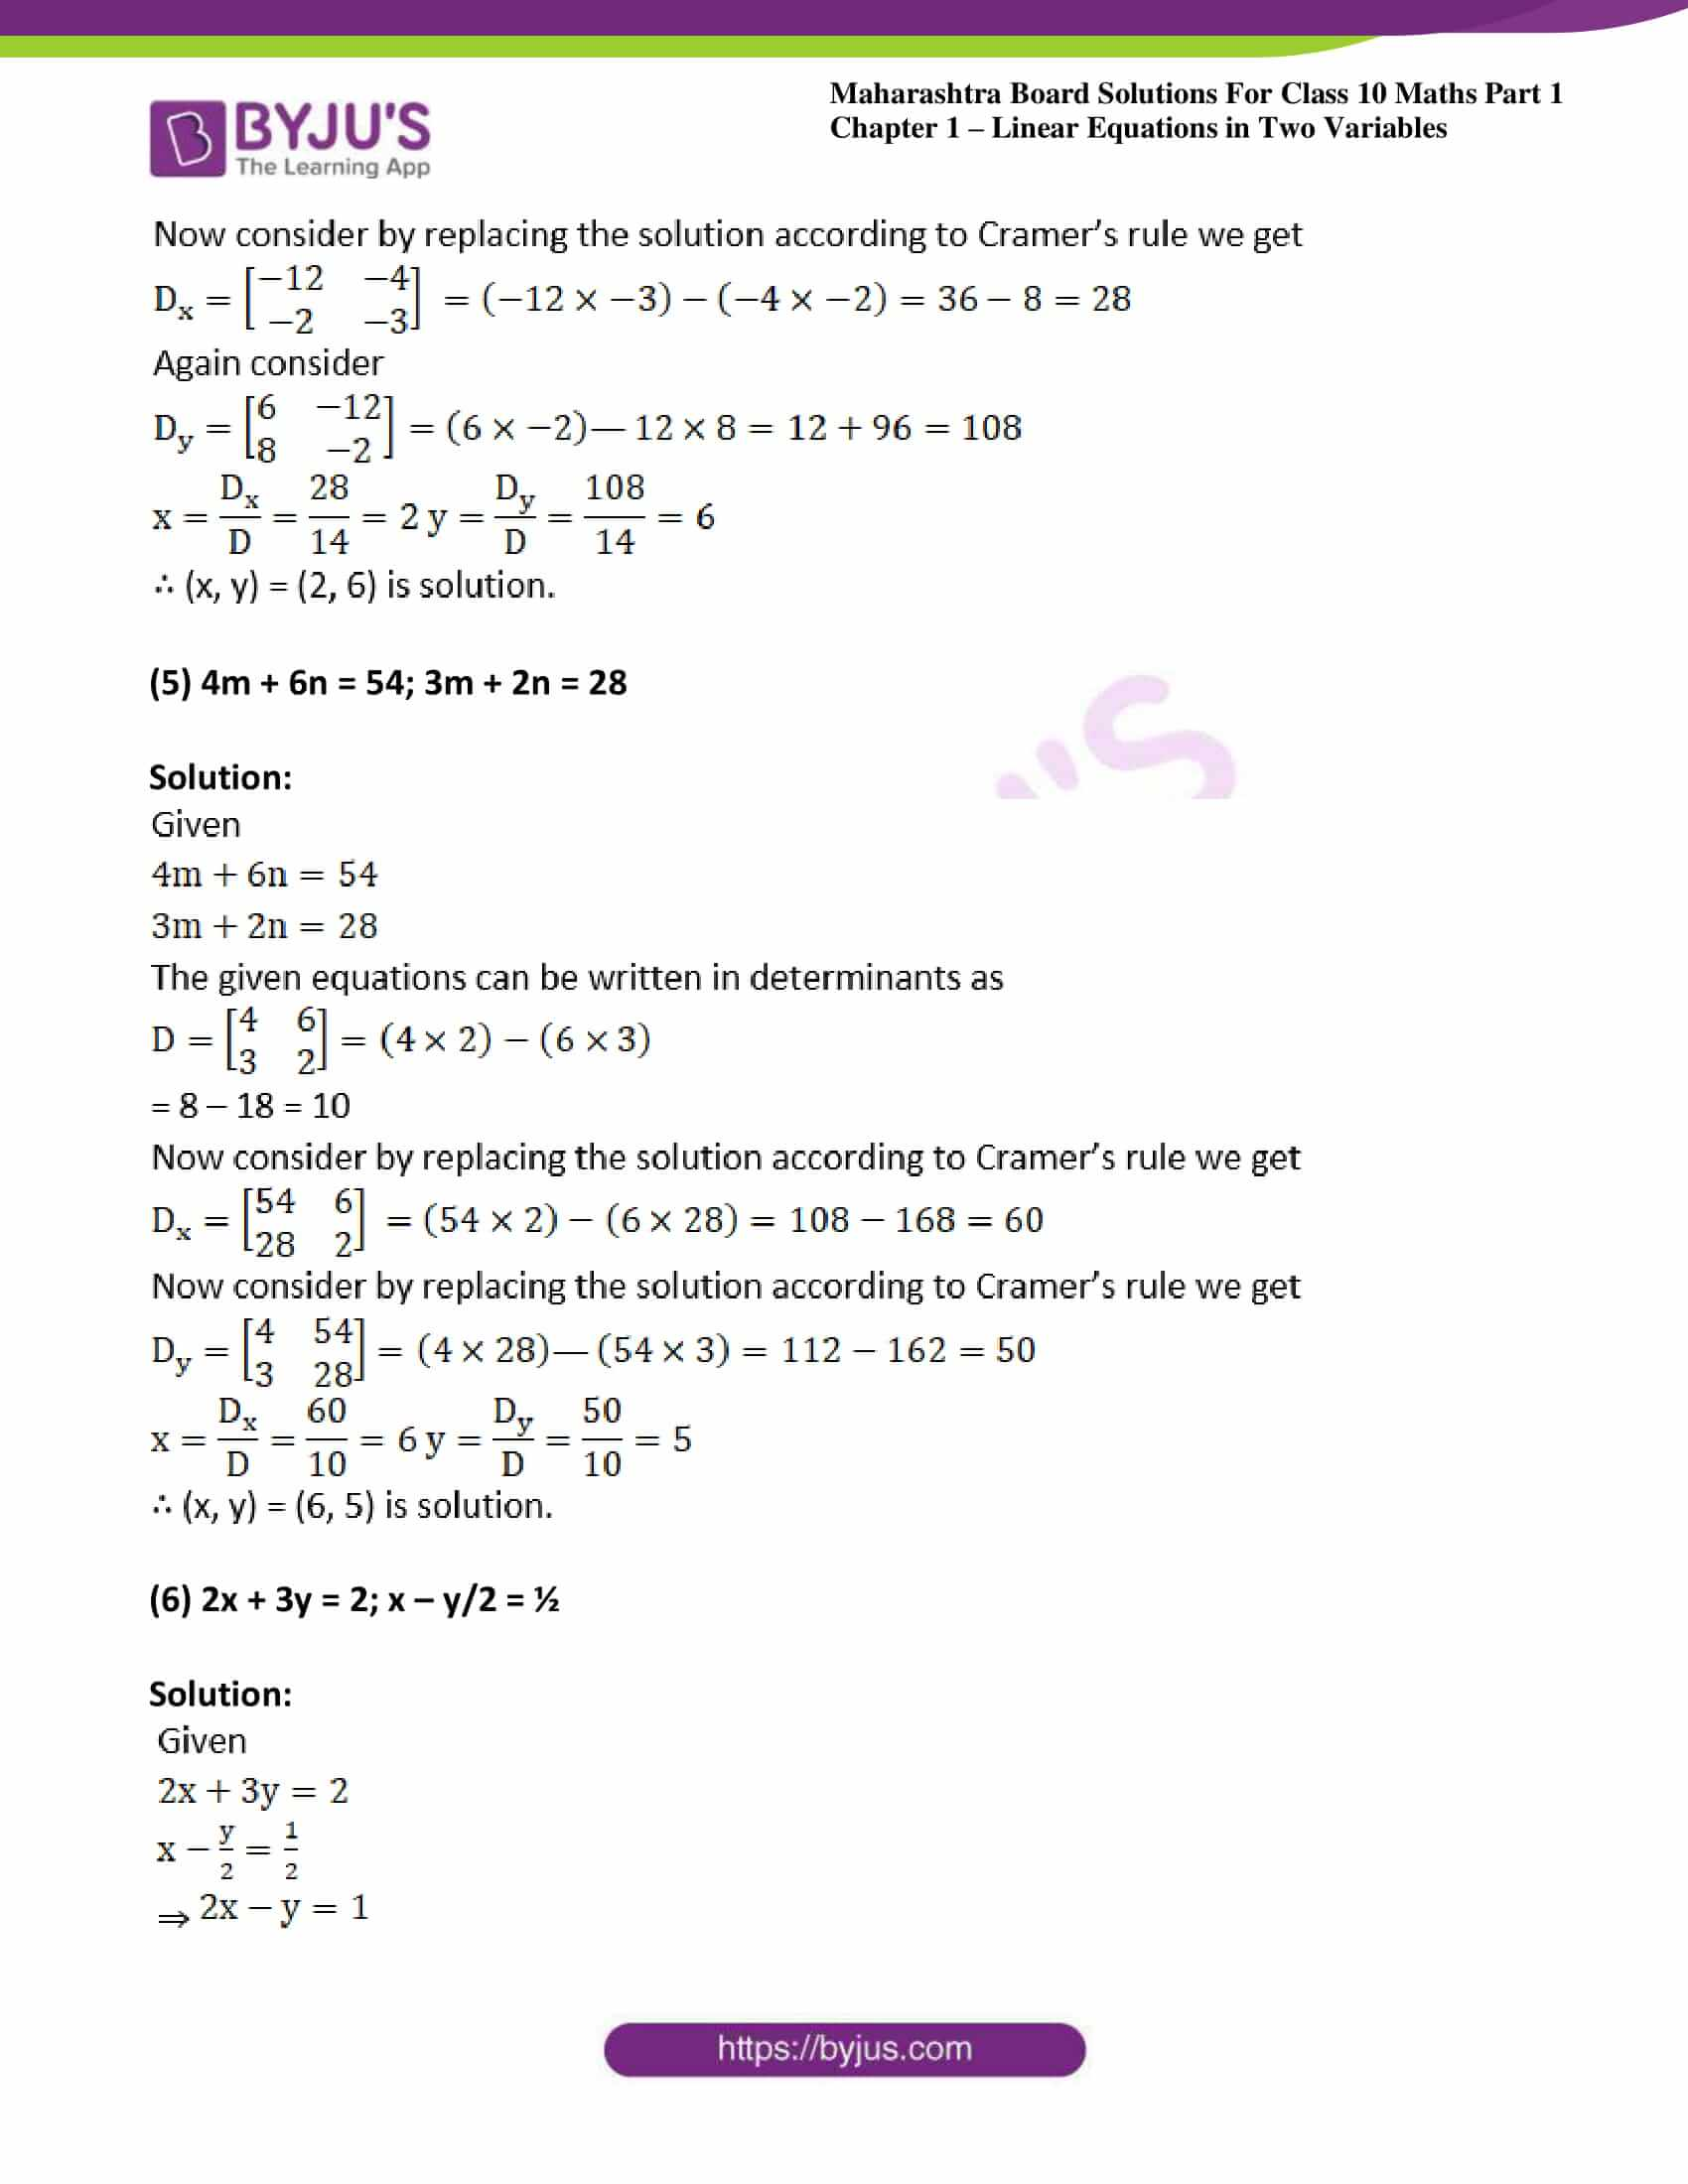 msbshse solutions class 10 maths part 1 chapter 1 21